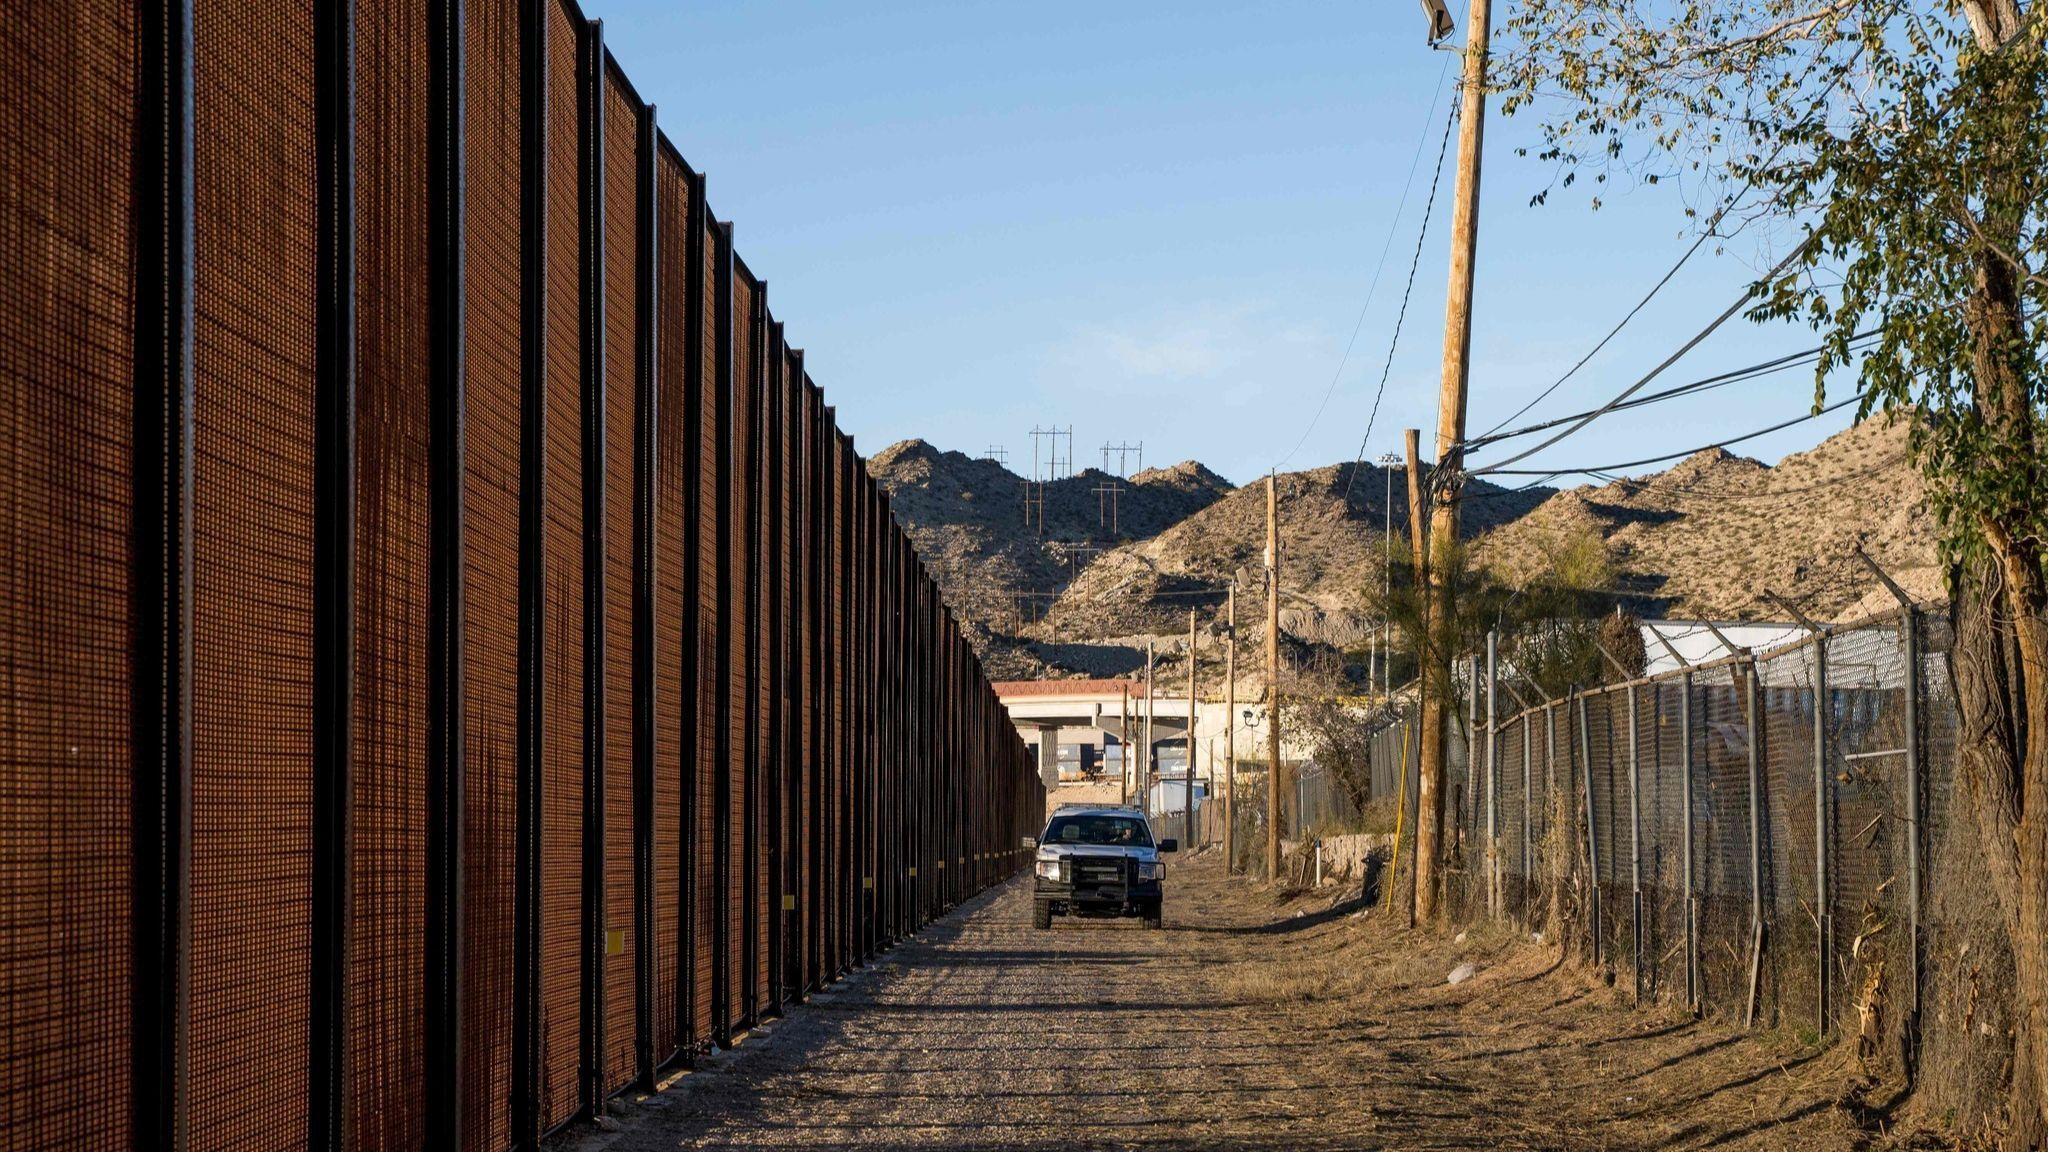 U.S. will reassign border inspectors as illegal crossings rise